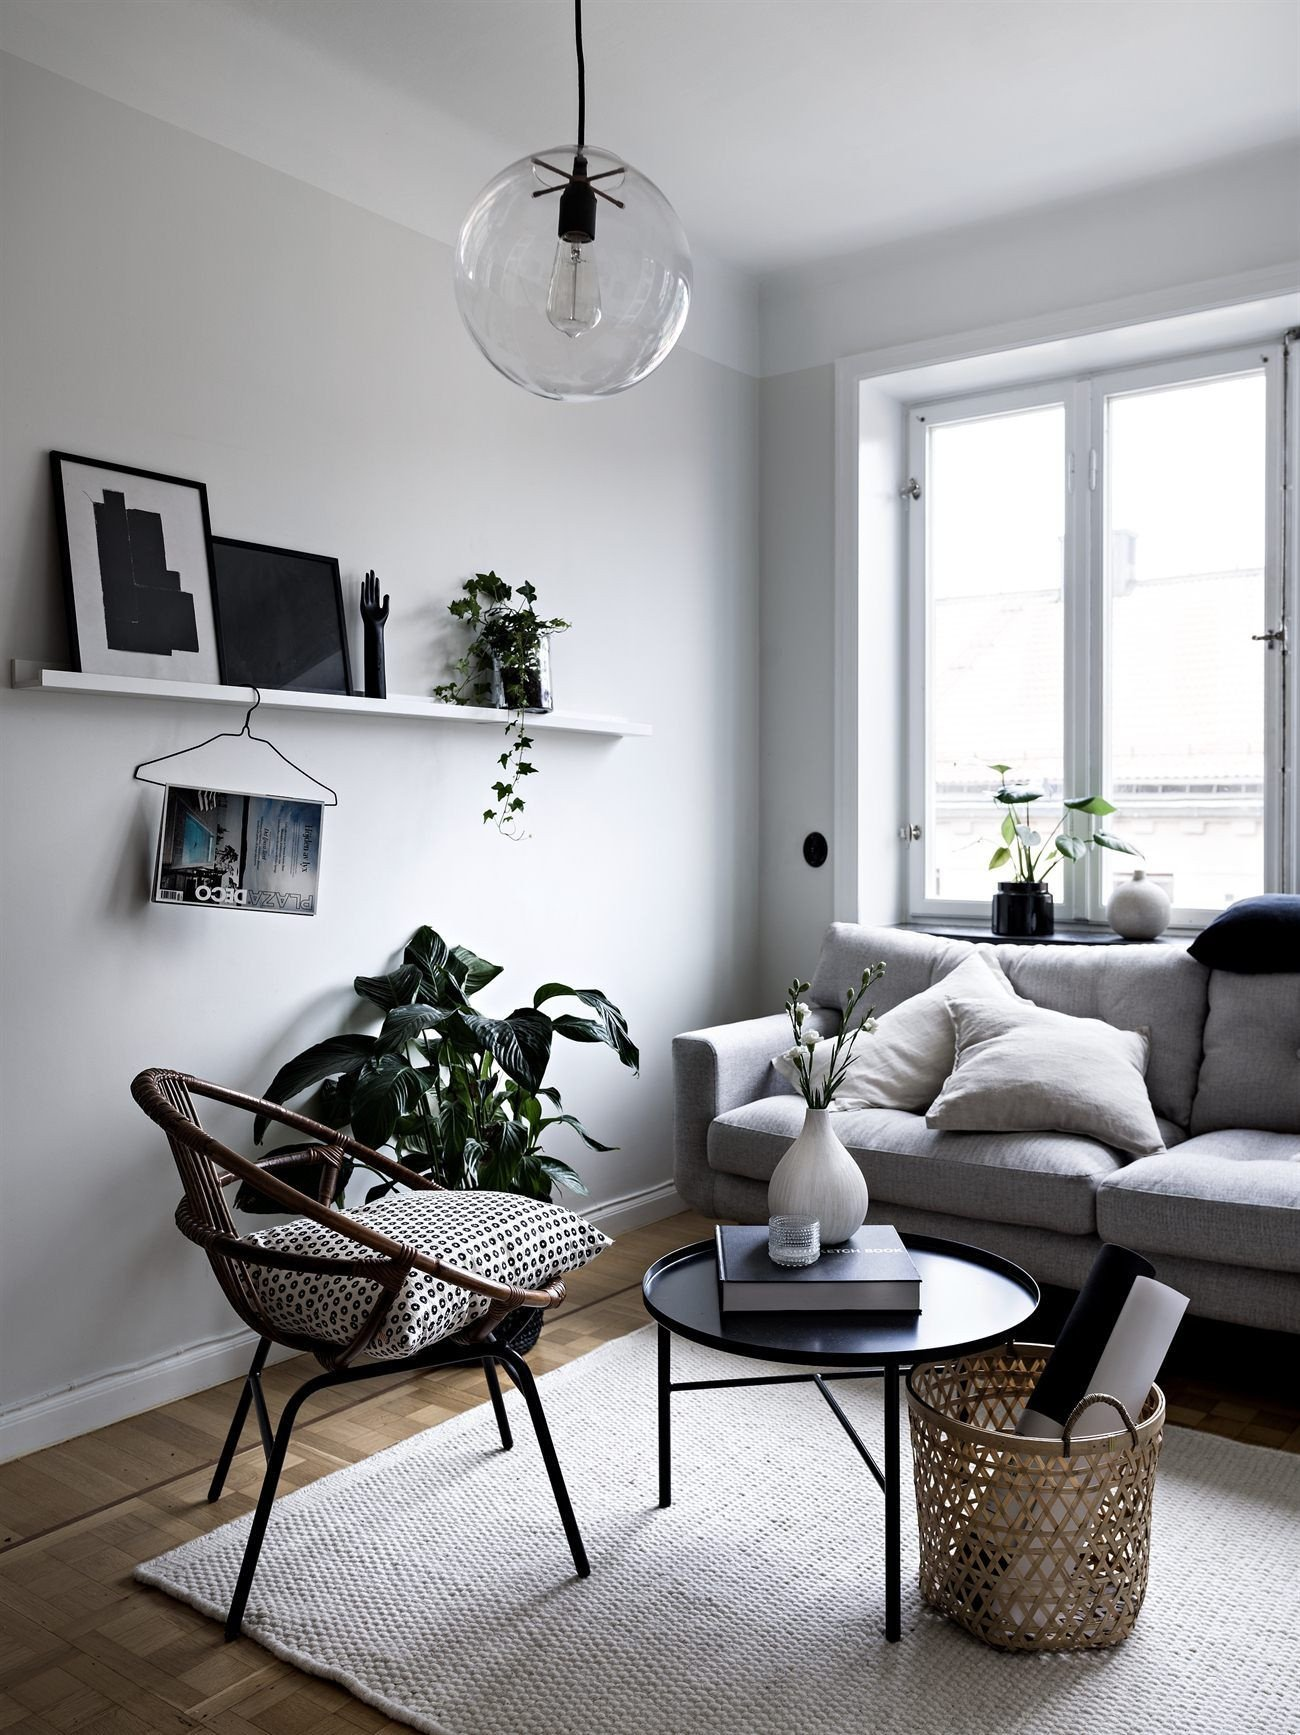 Minimalist Small Living Room Ideas New 30 Minimalist Living Room Ideas & Inspiration to Make the Most Of Your Space